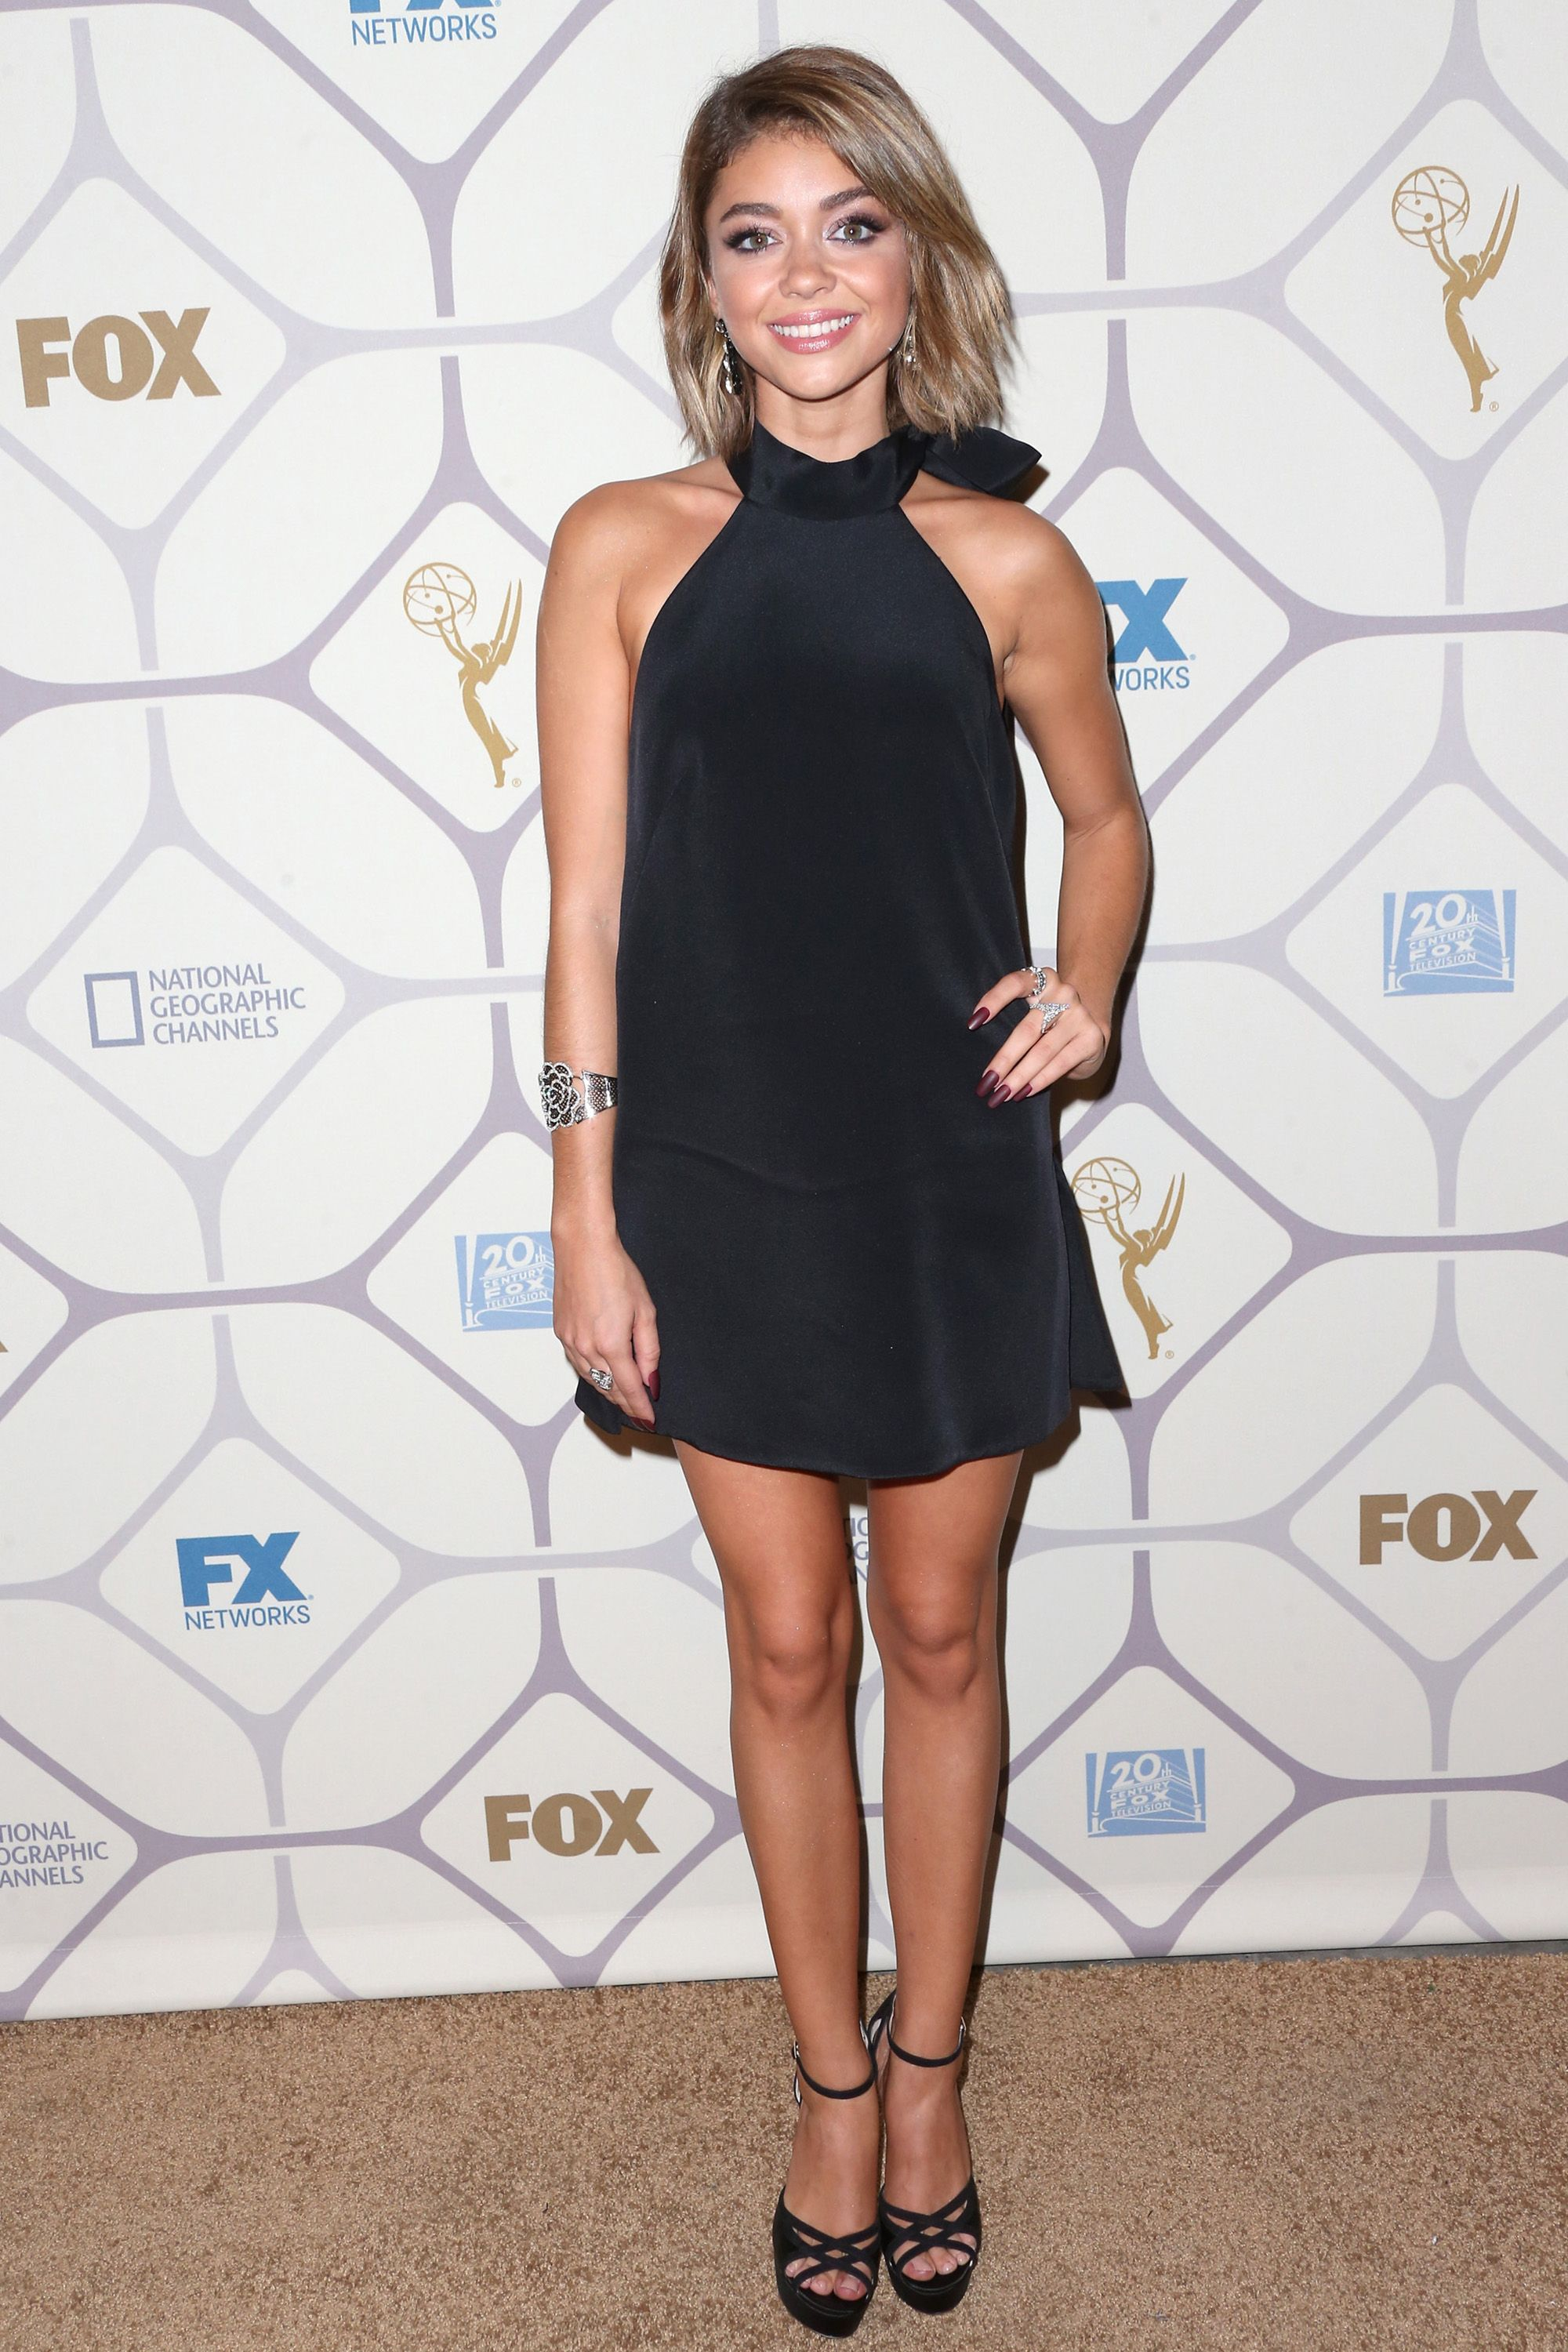 Emmys 2015 Parties - Celebrity Photos of the Emmys 2015 After-Parties